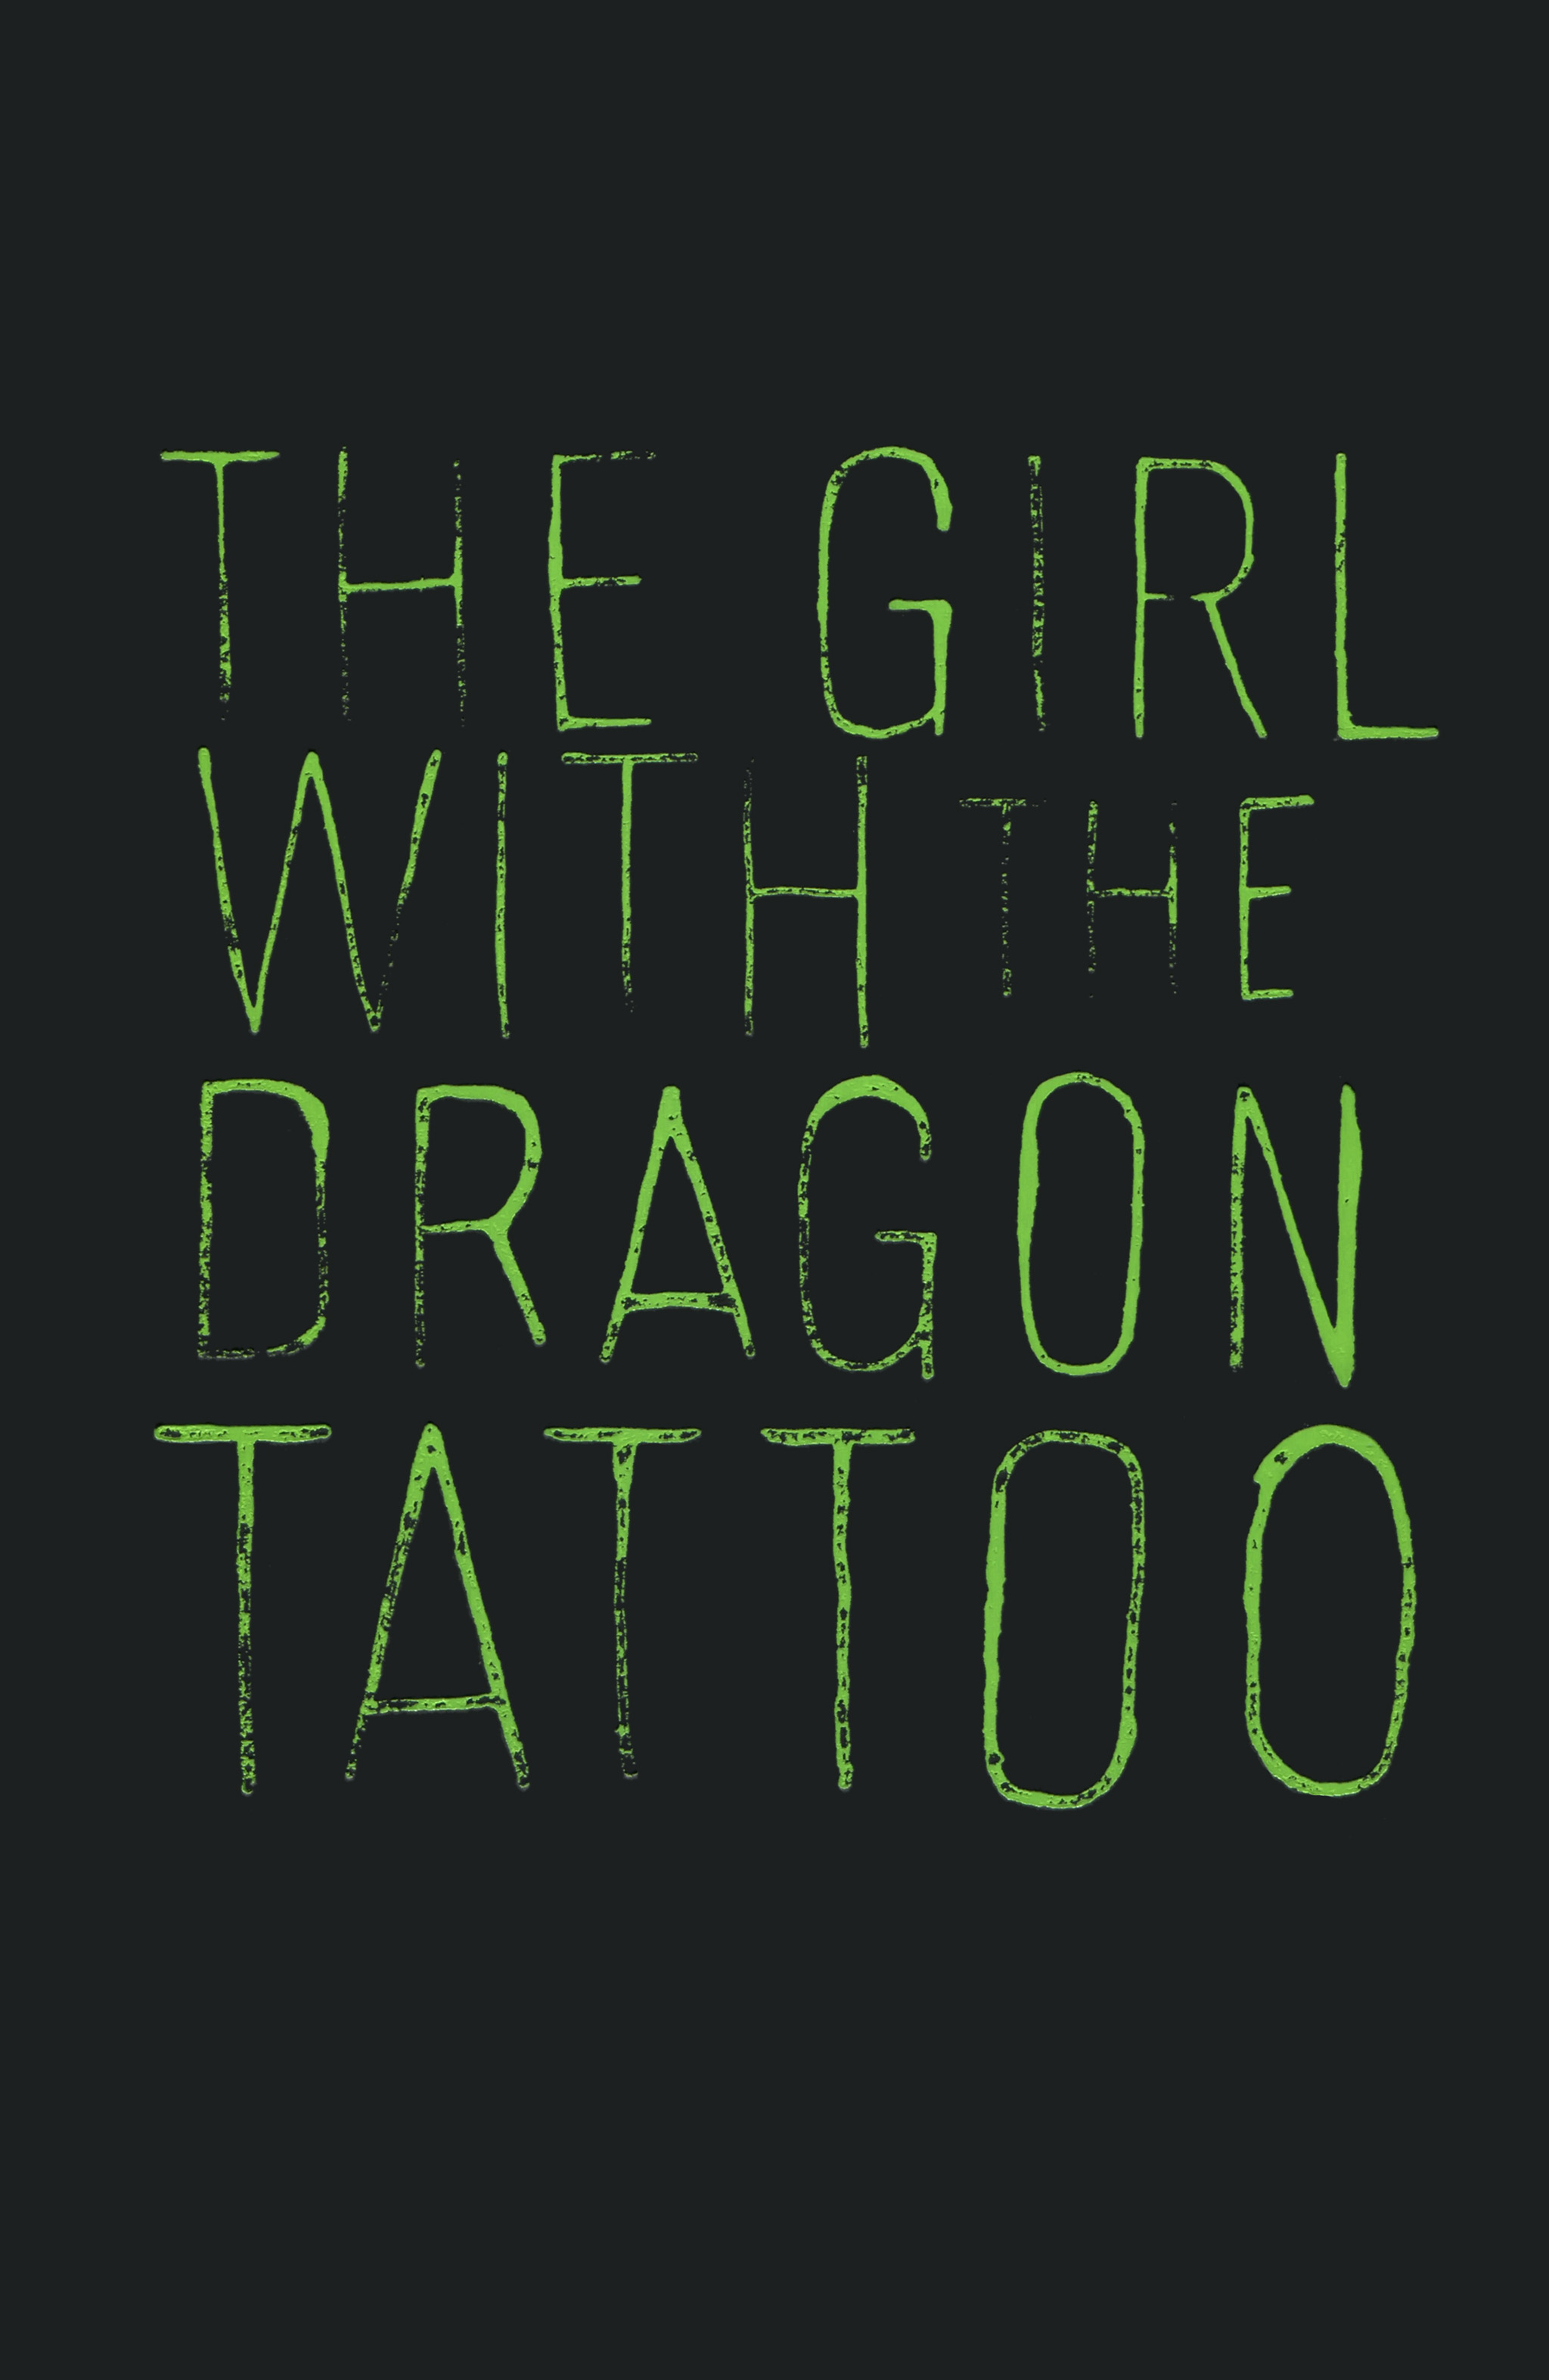 Read online The Girl With the Dragon Tattoo comic -  Issue # TPB 2 - 3